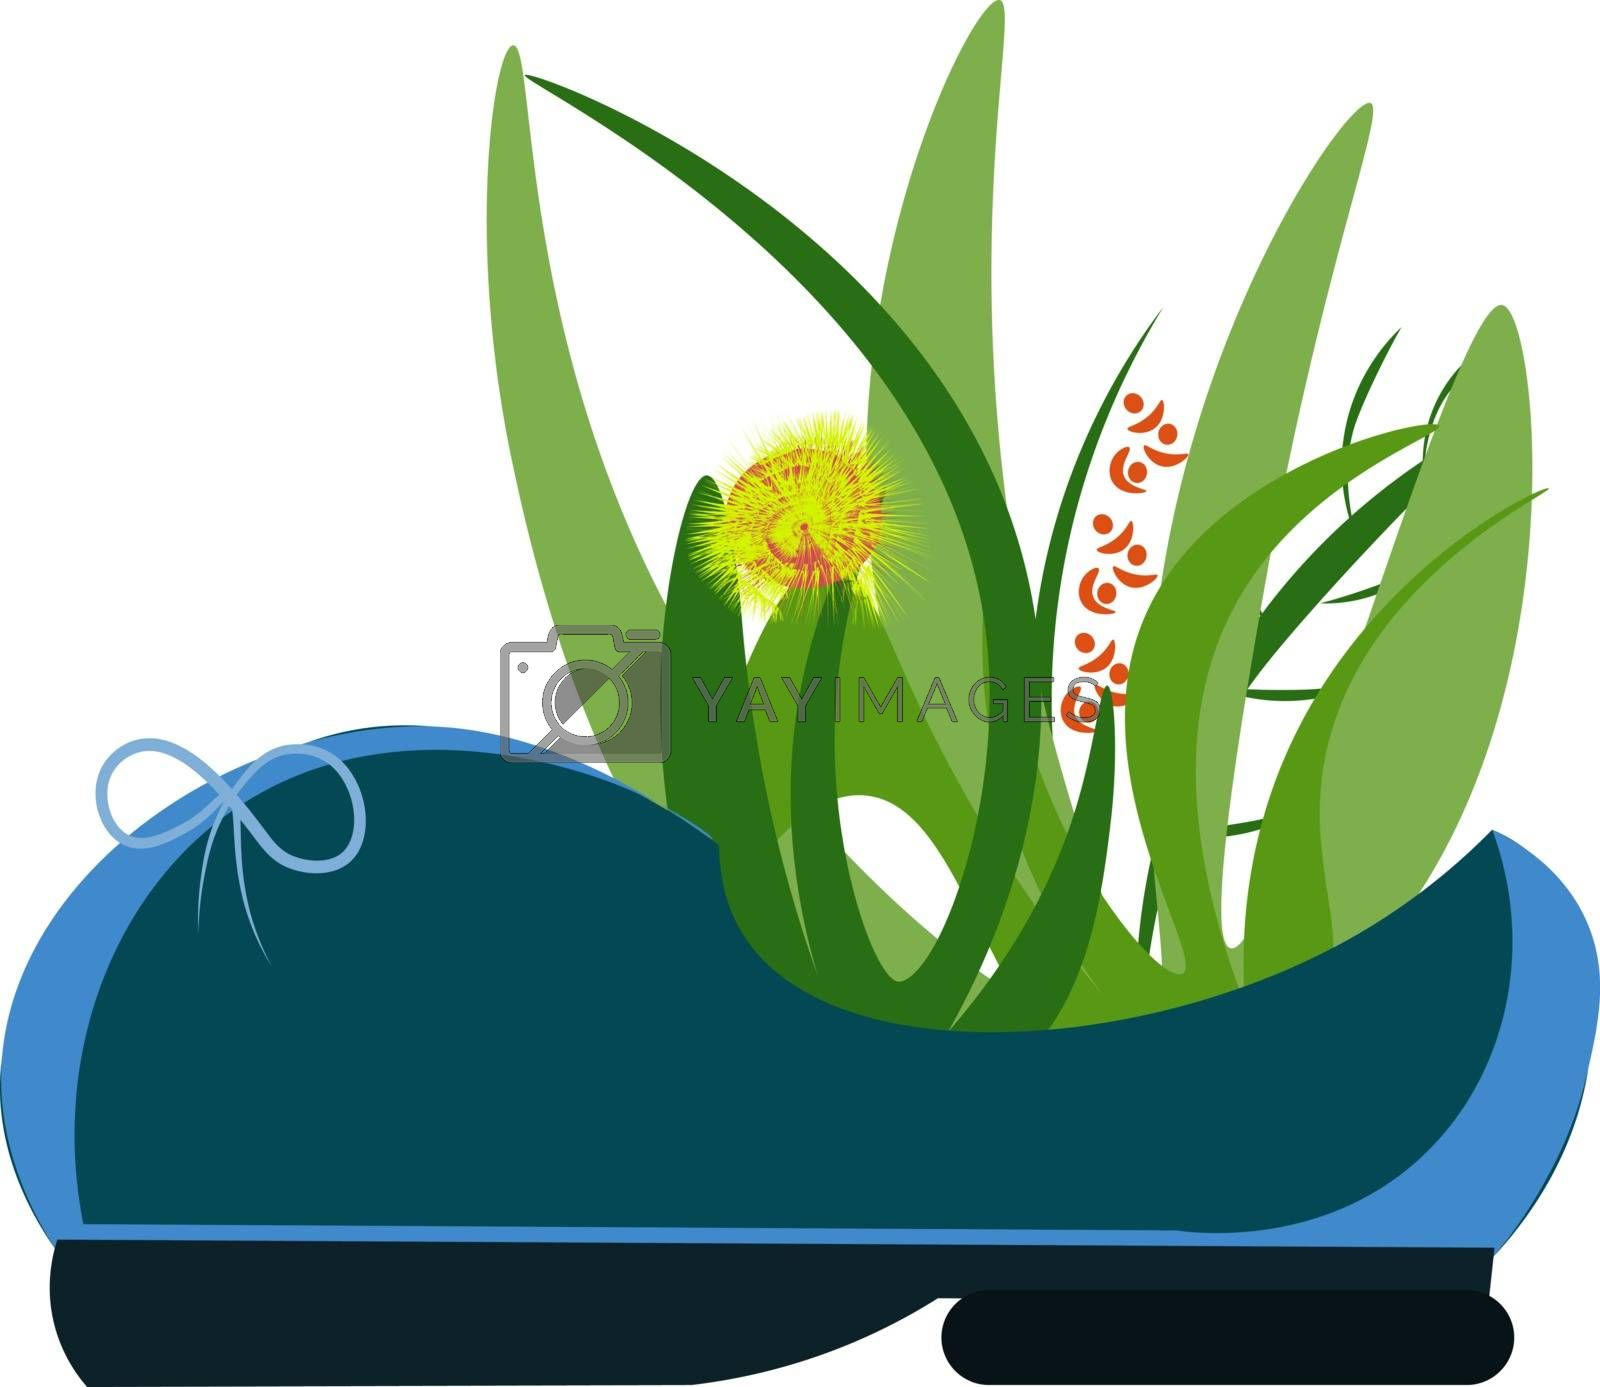 Royalty free image of Painting of a plant blossomed with flowers in a blue lady's shoe by Morphart